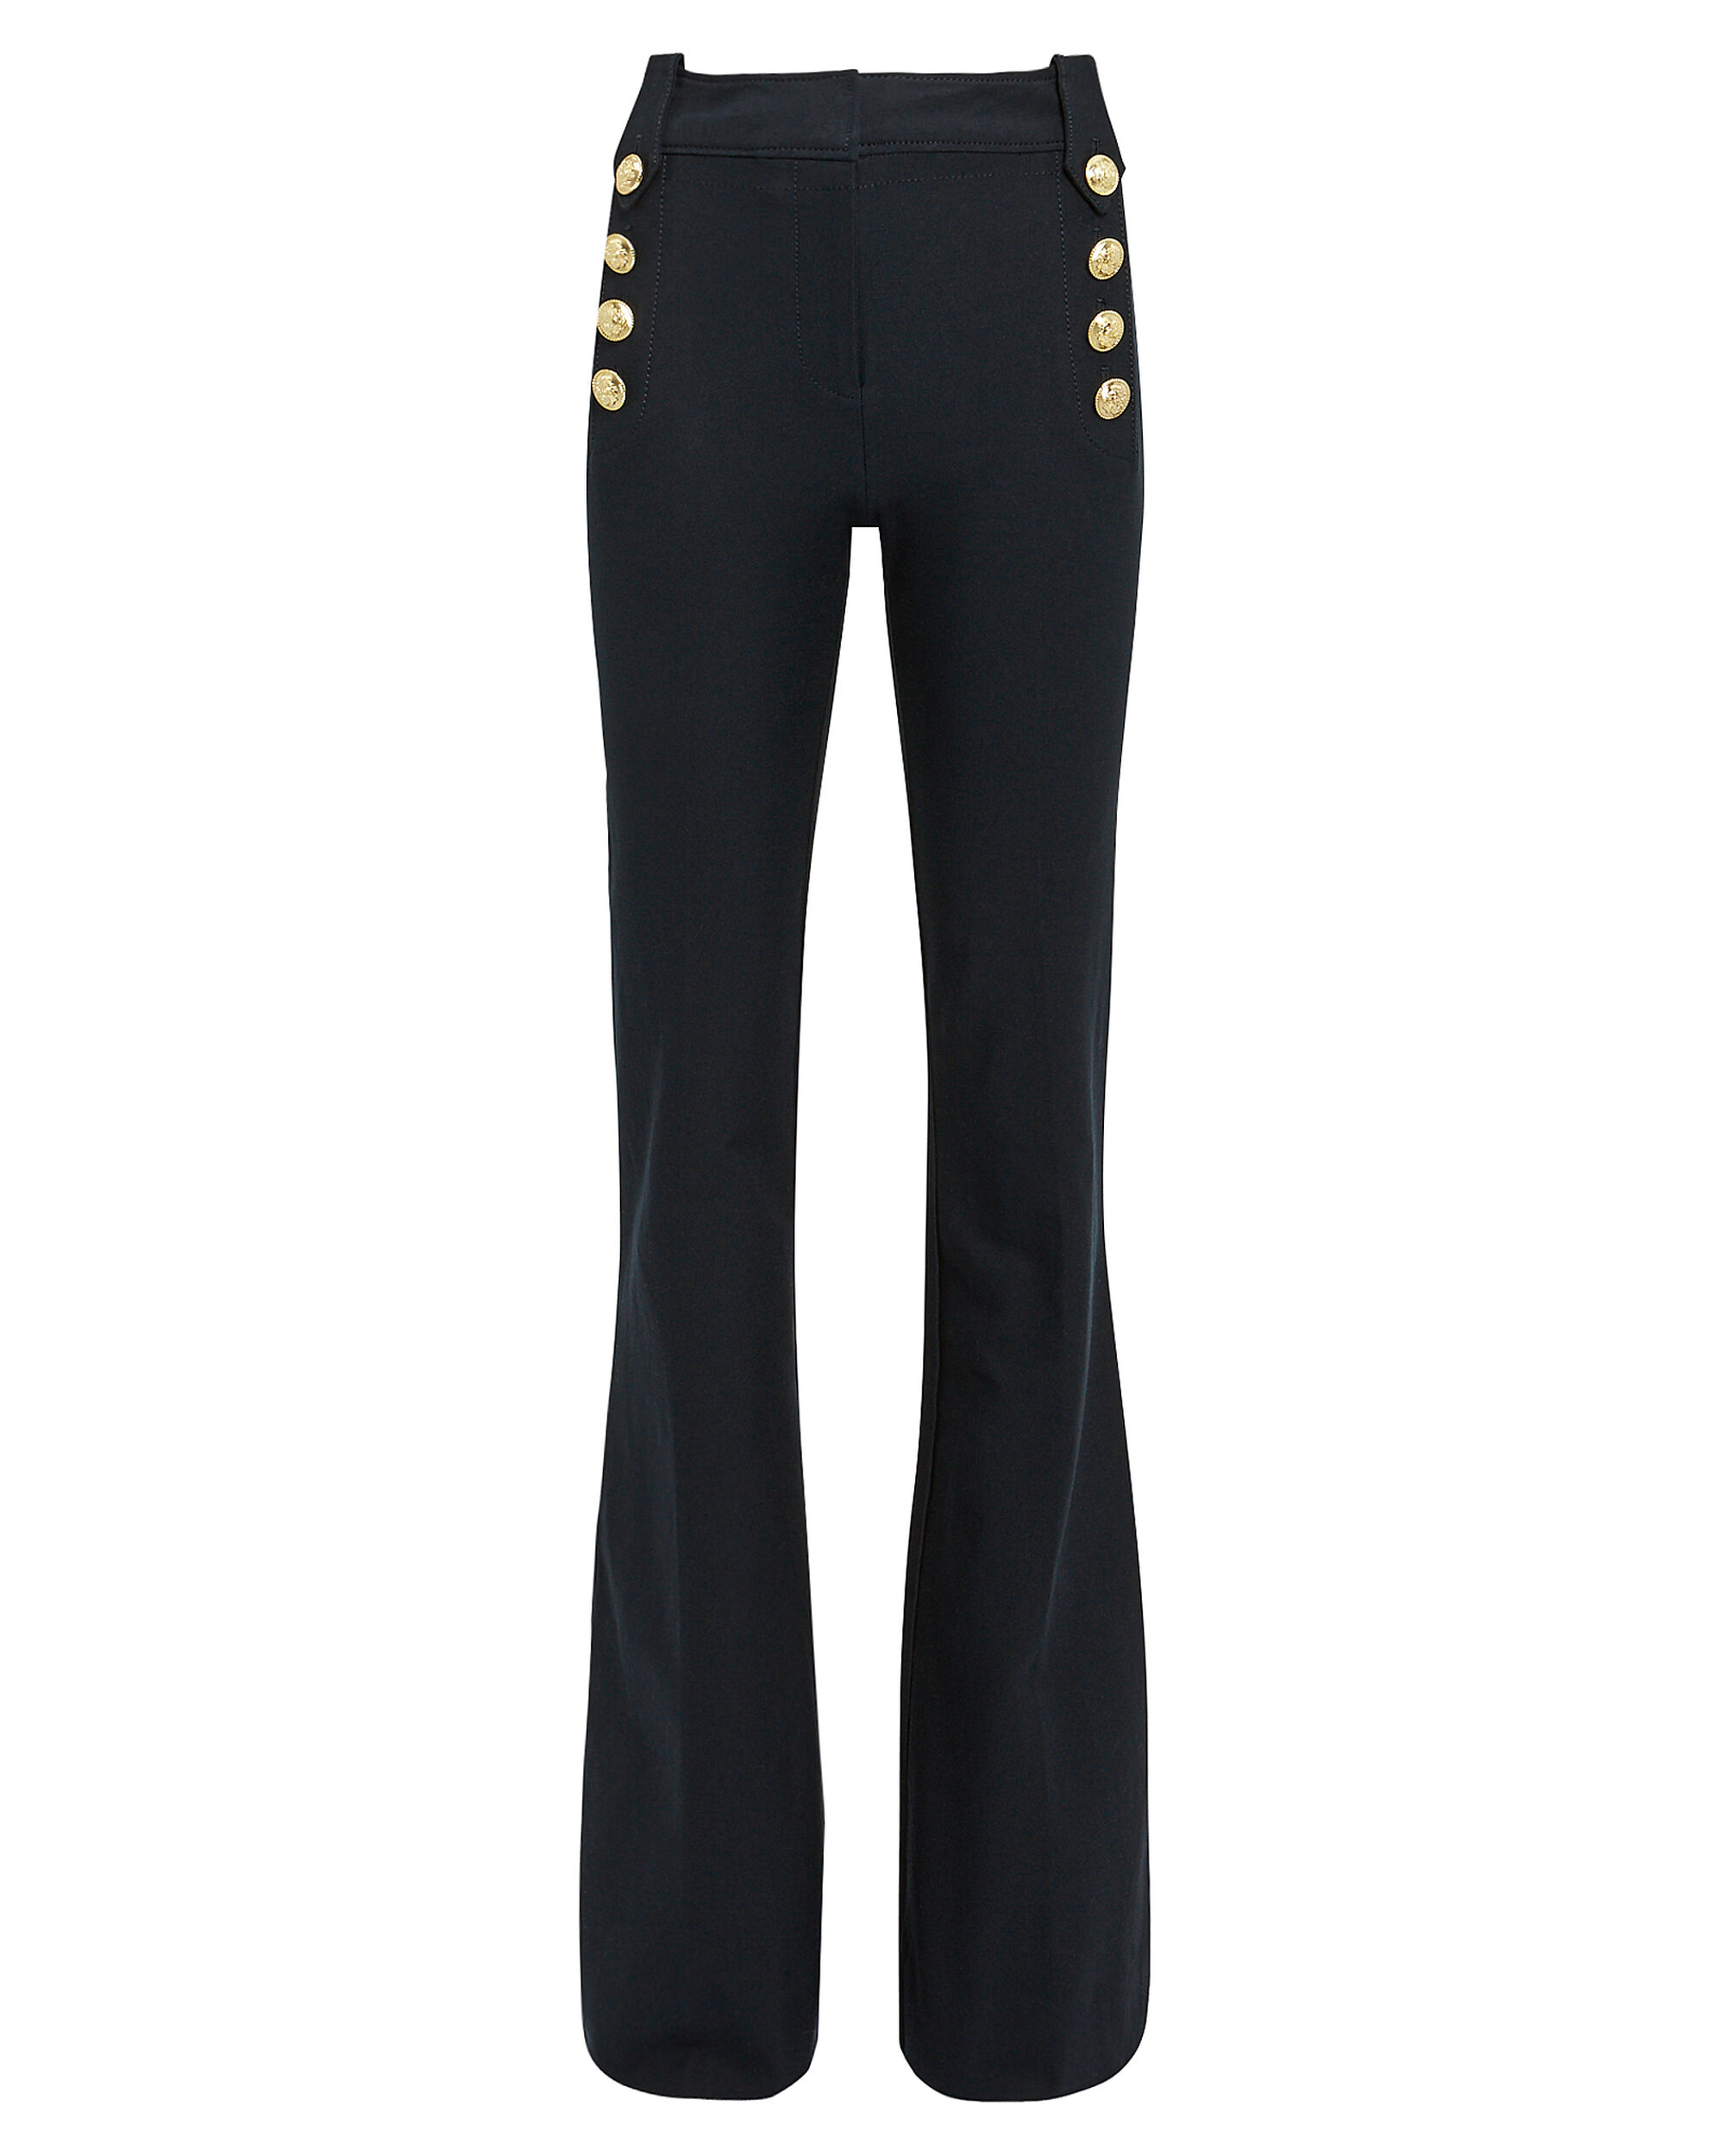 Robertson Sailor Flare Trousers, NAVY, hi-res